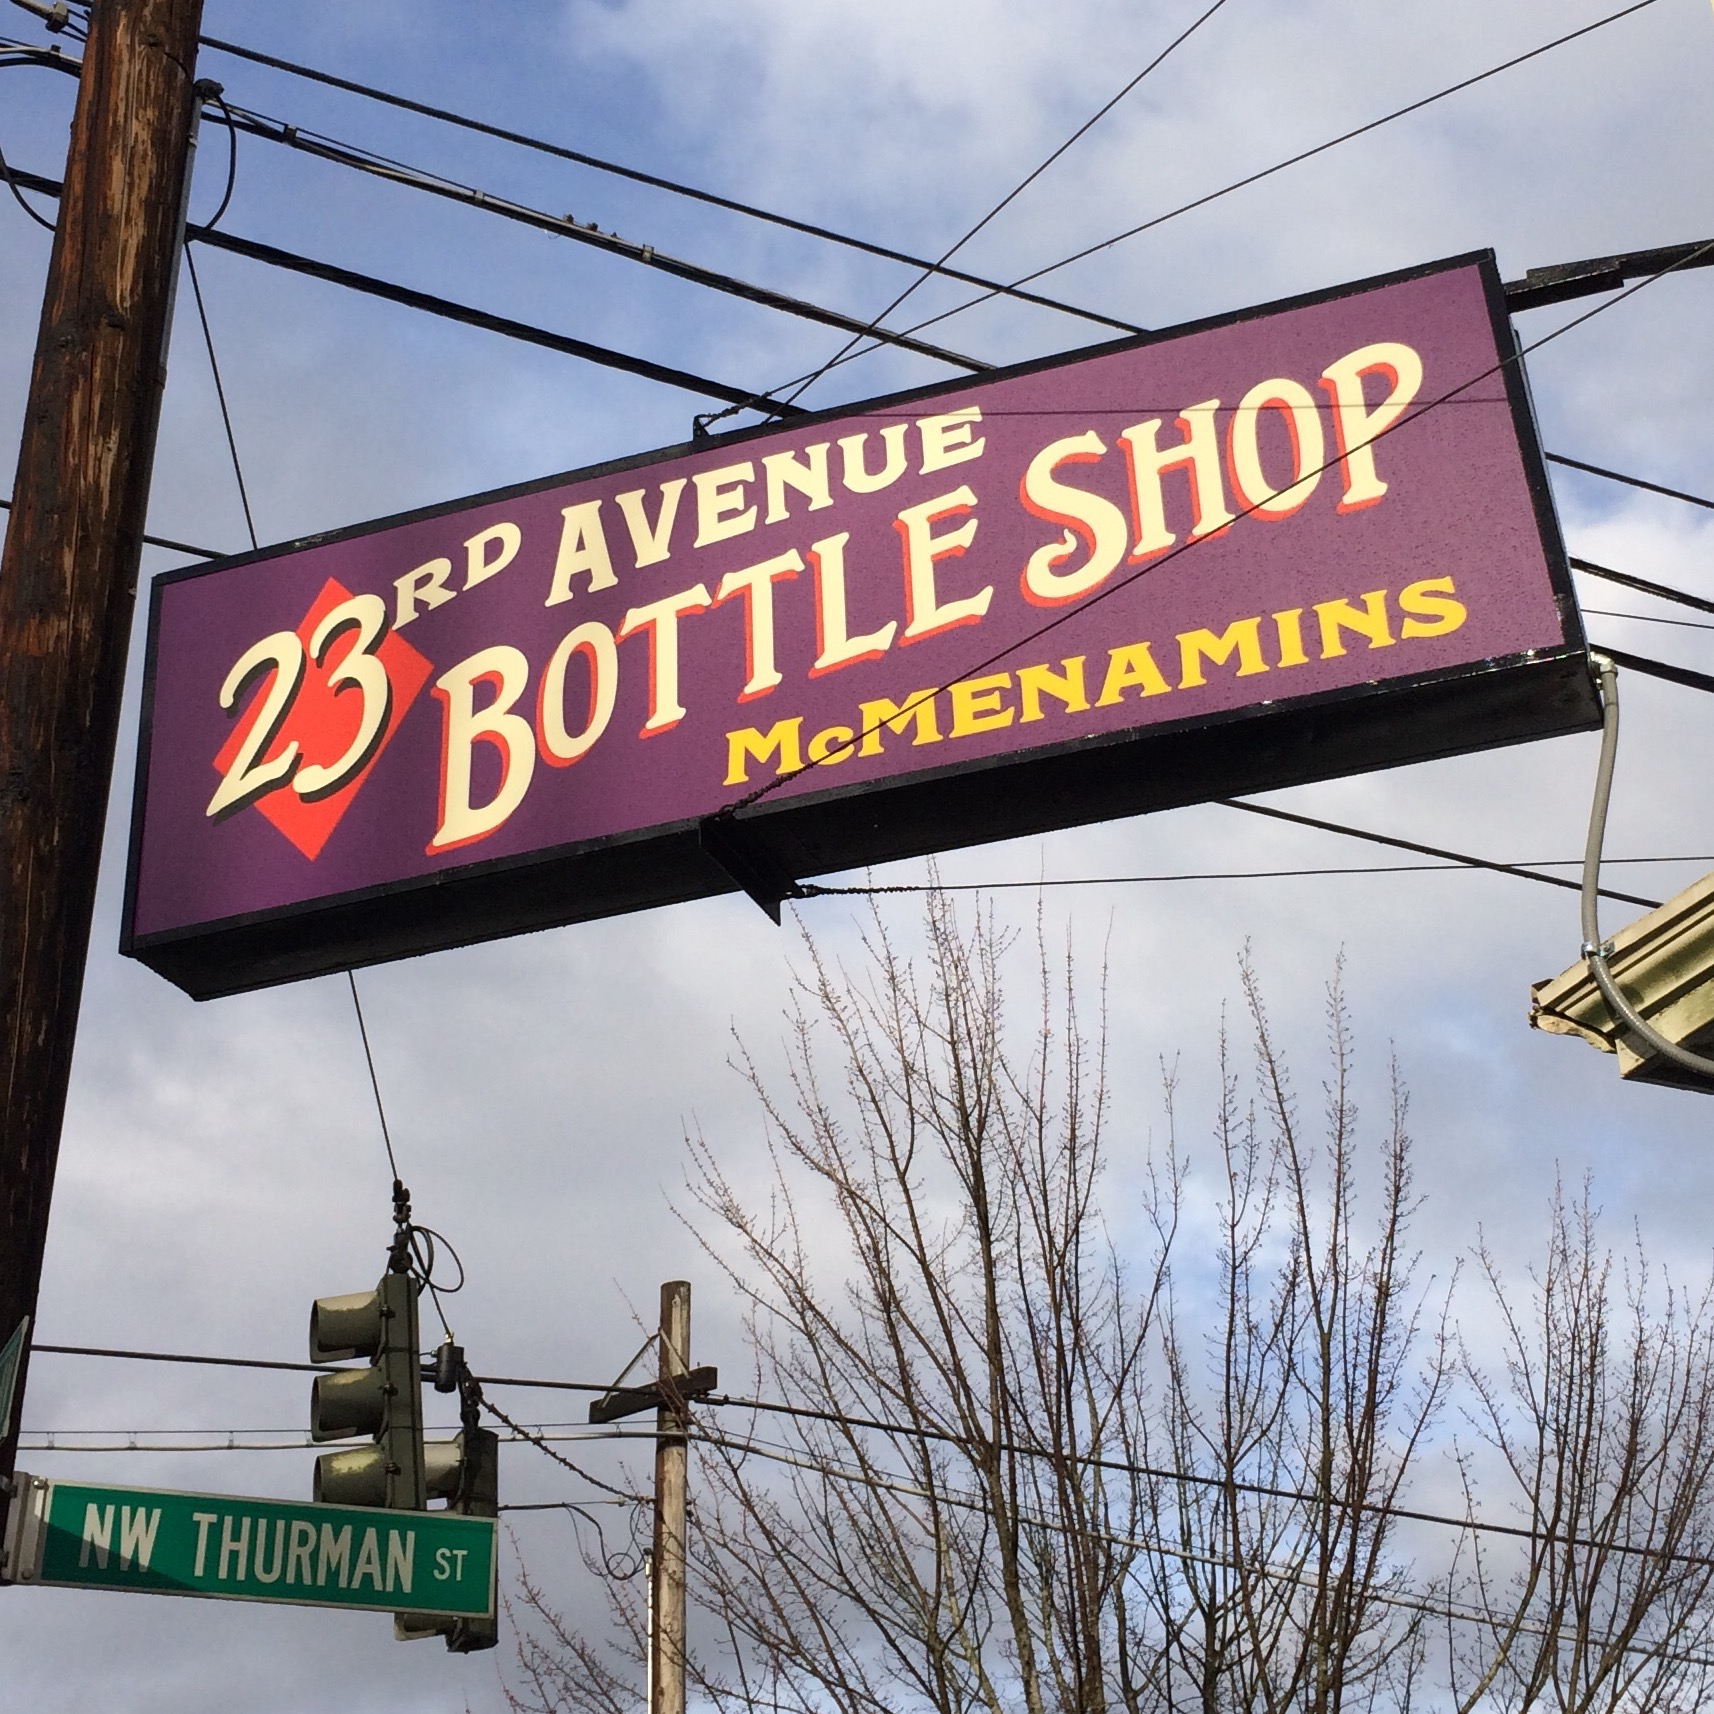 McMenamins 23rd Avenue Bottle Shop (photo by D.J. Paul)